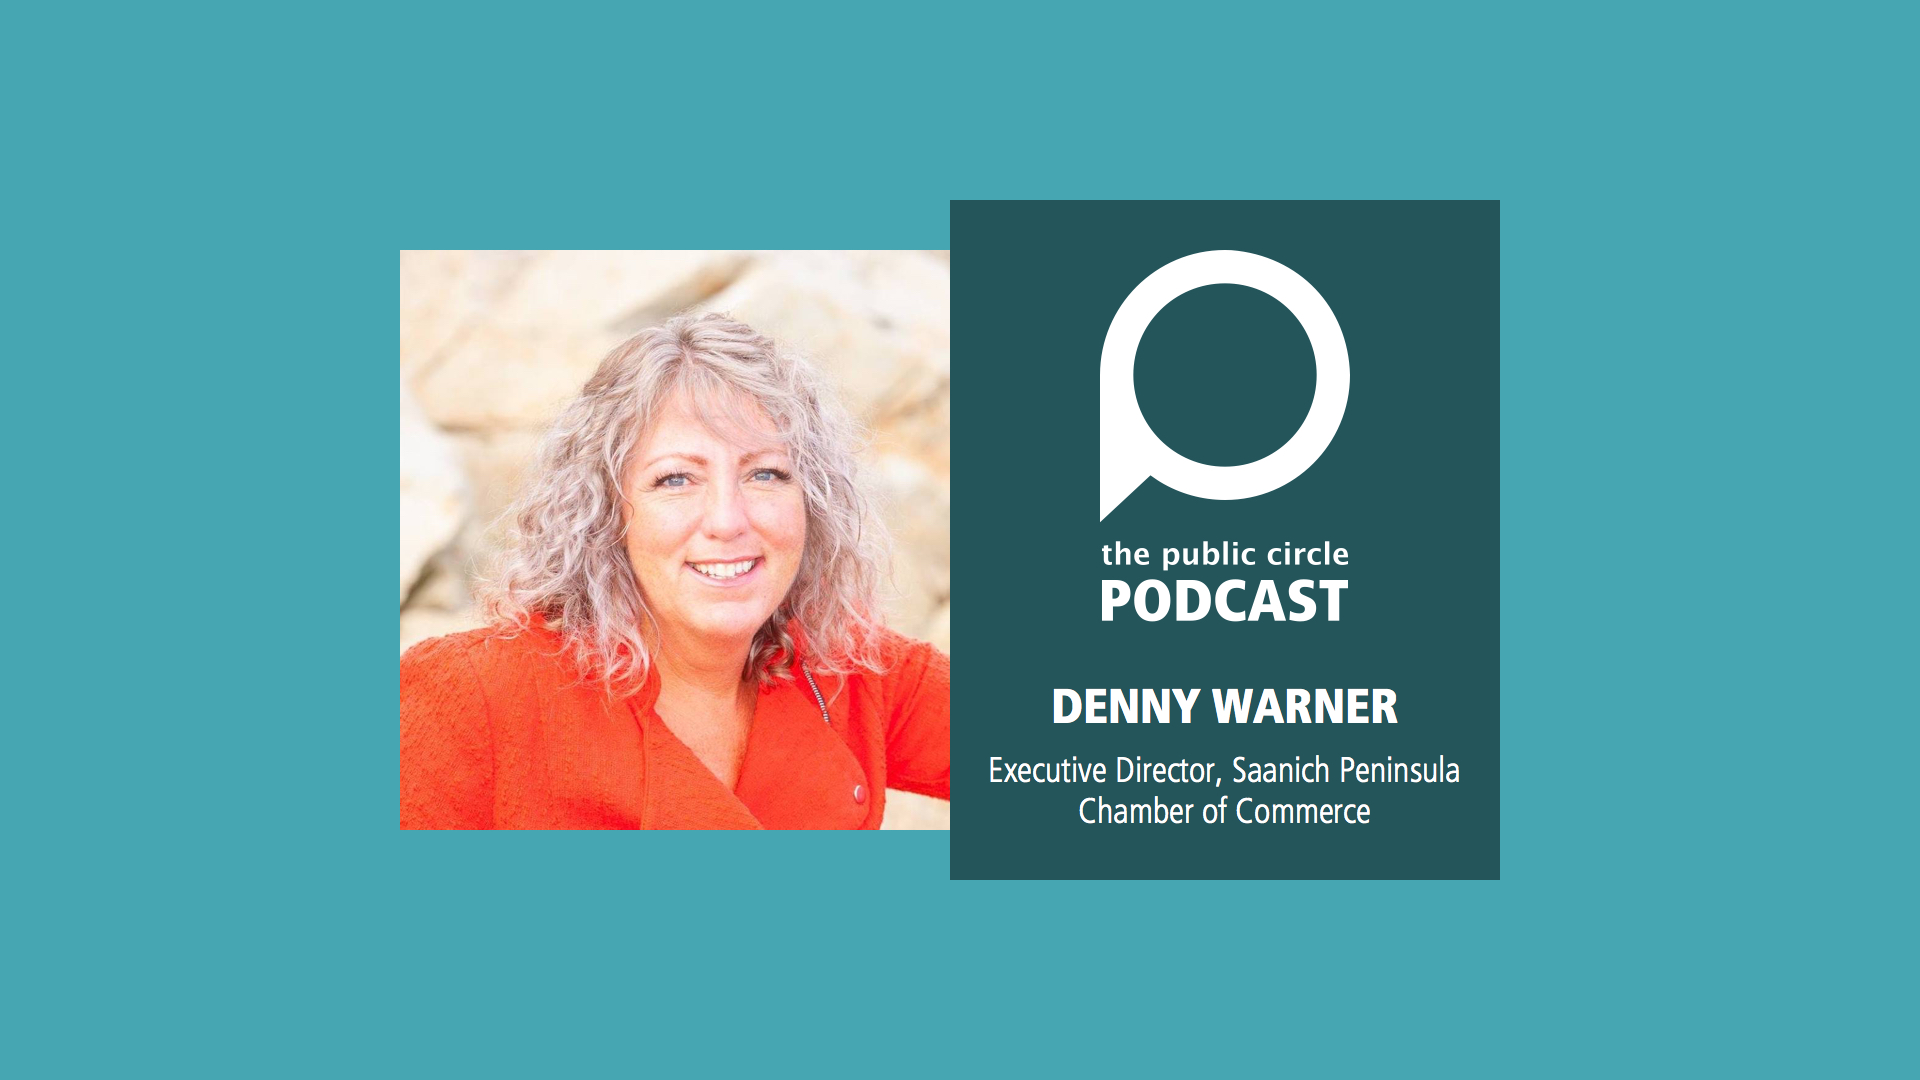 PODCAST: Denny Warner – Executive Director, Saanich Peninsula Chamber of Commerce